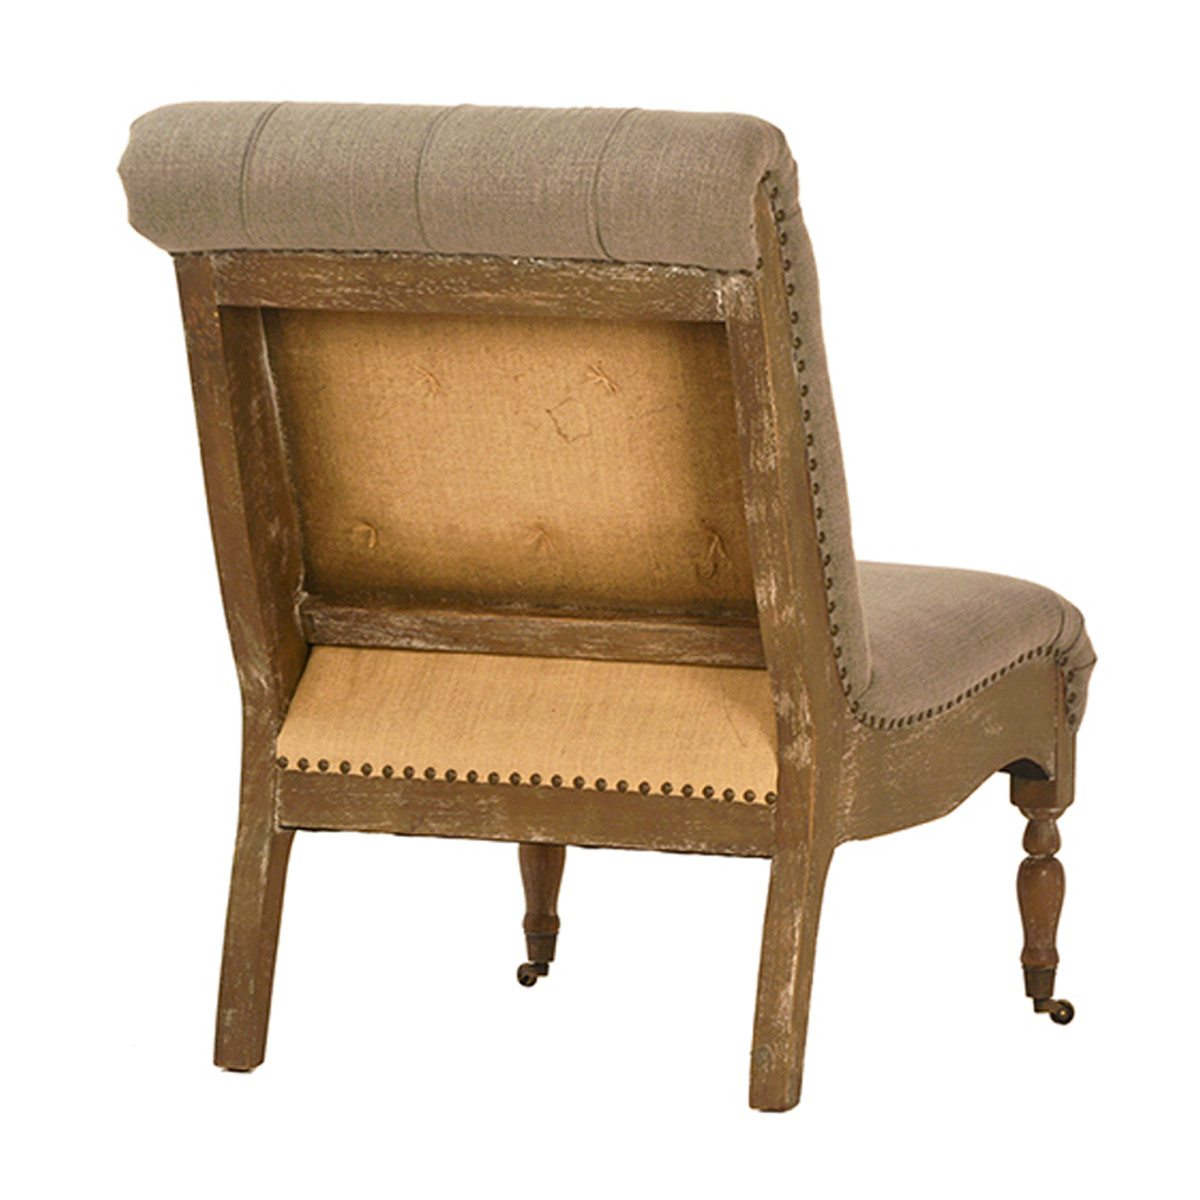 quinn-occasional-chair-2-shopceladon